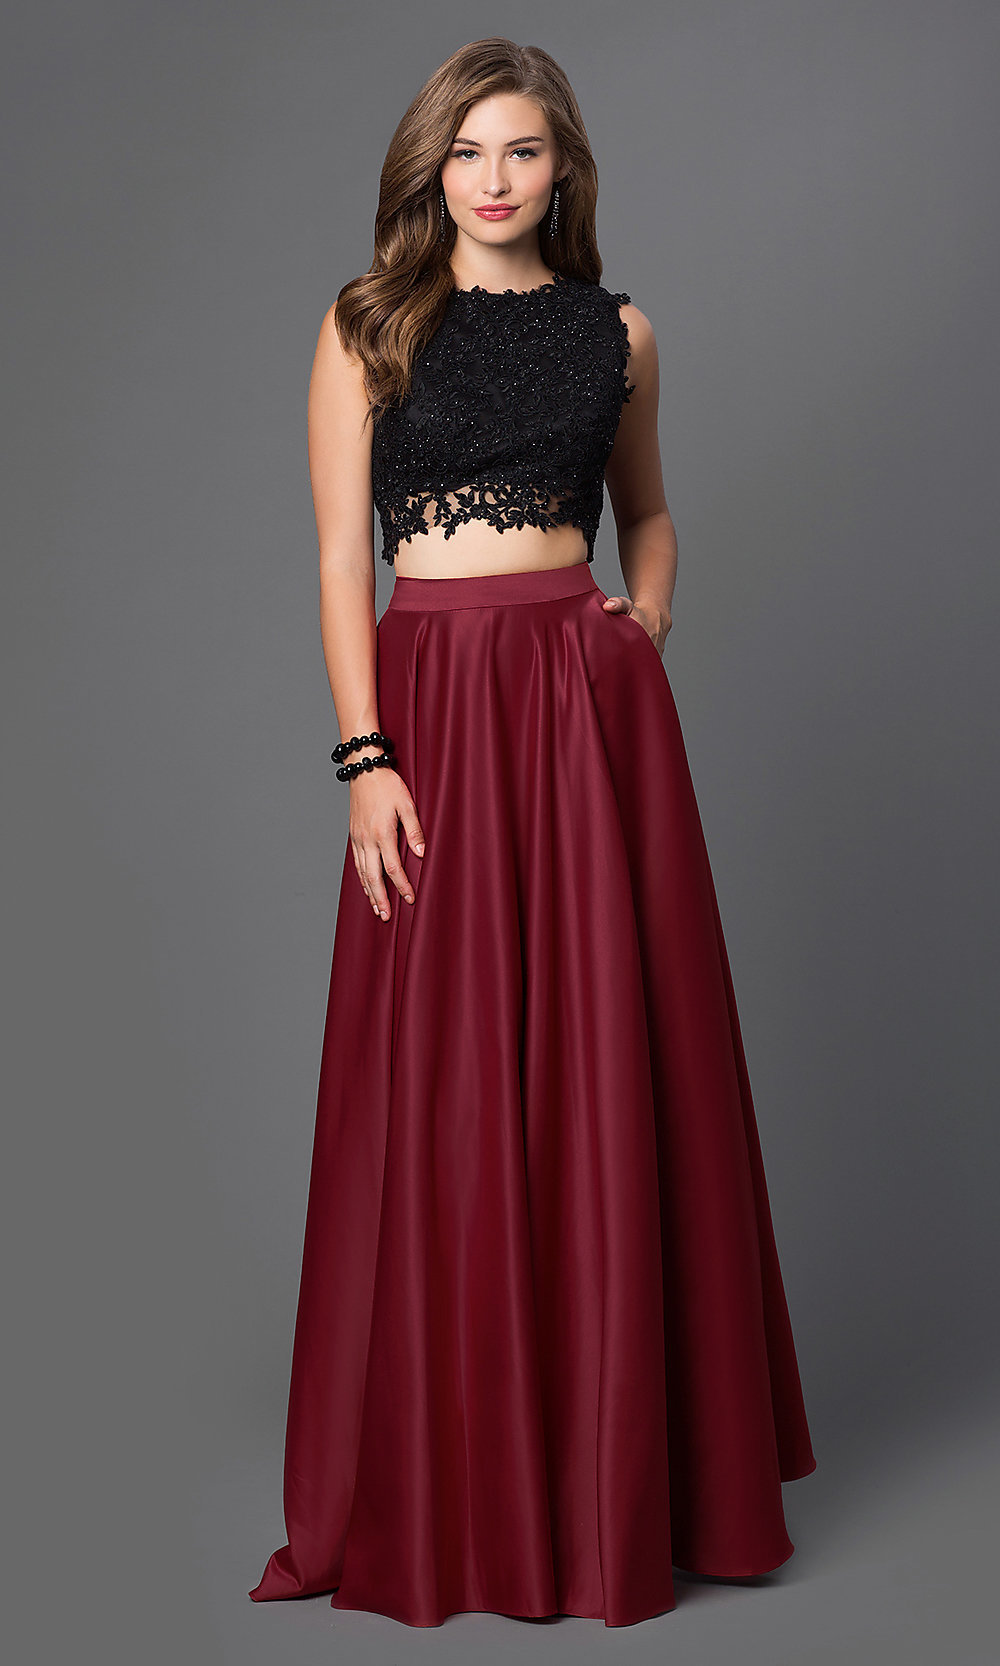 Maroon and Black Prom Dress